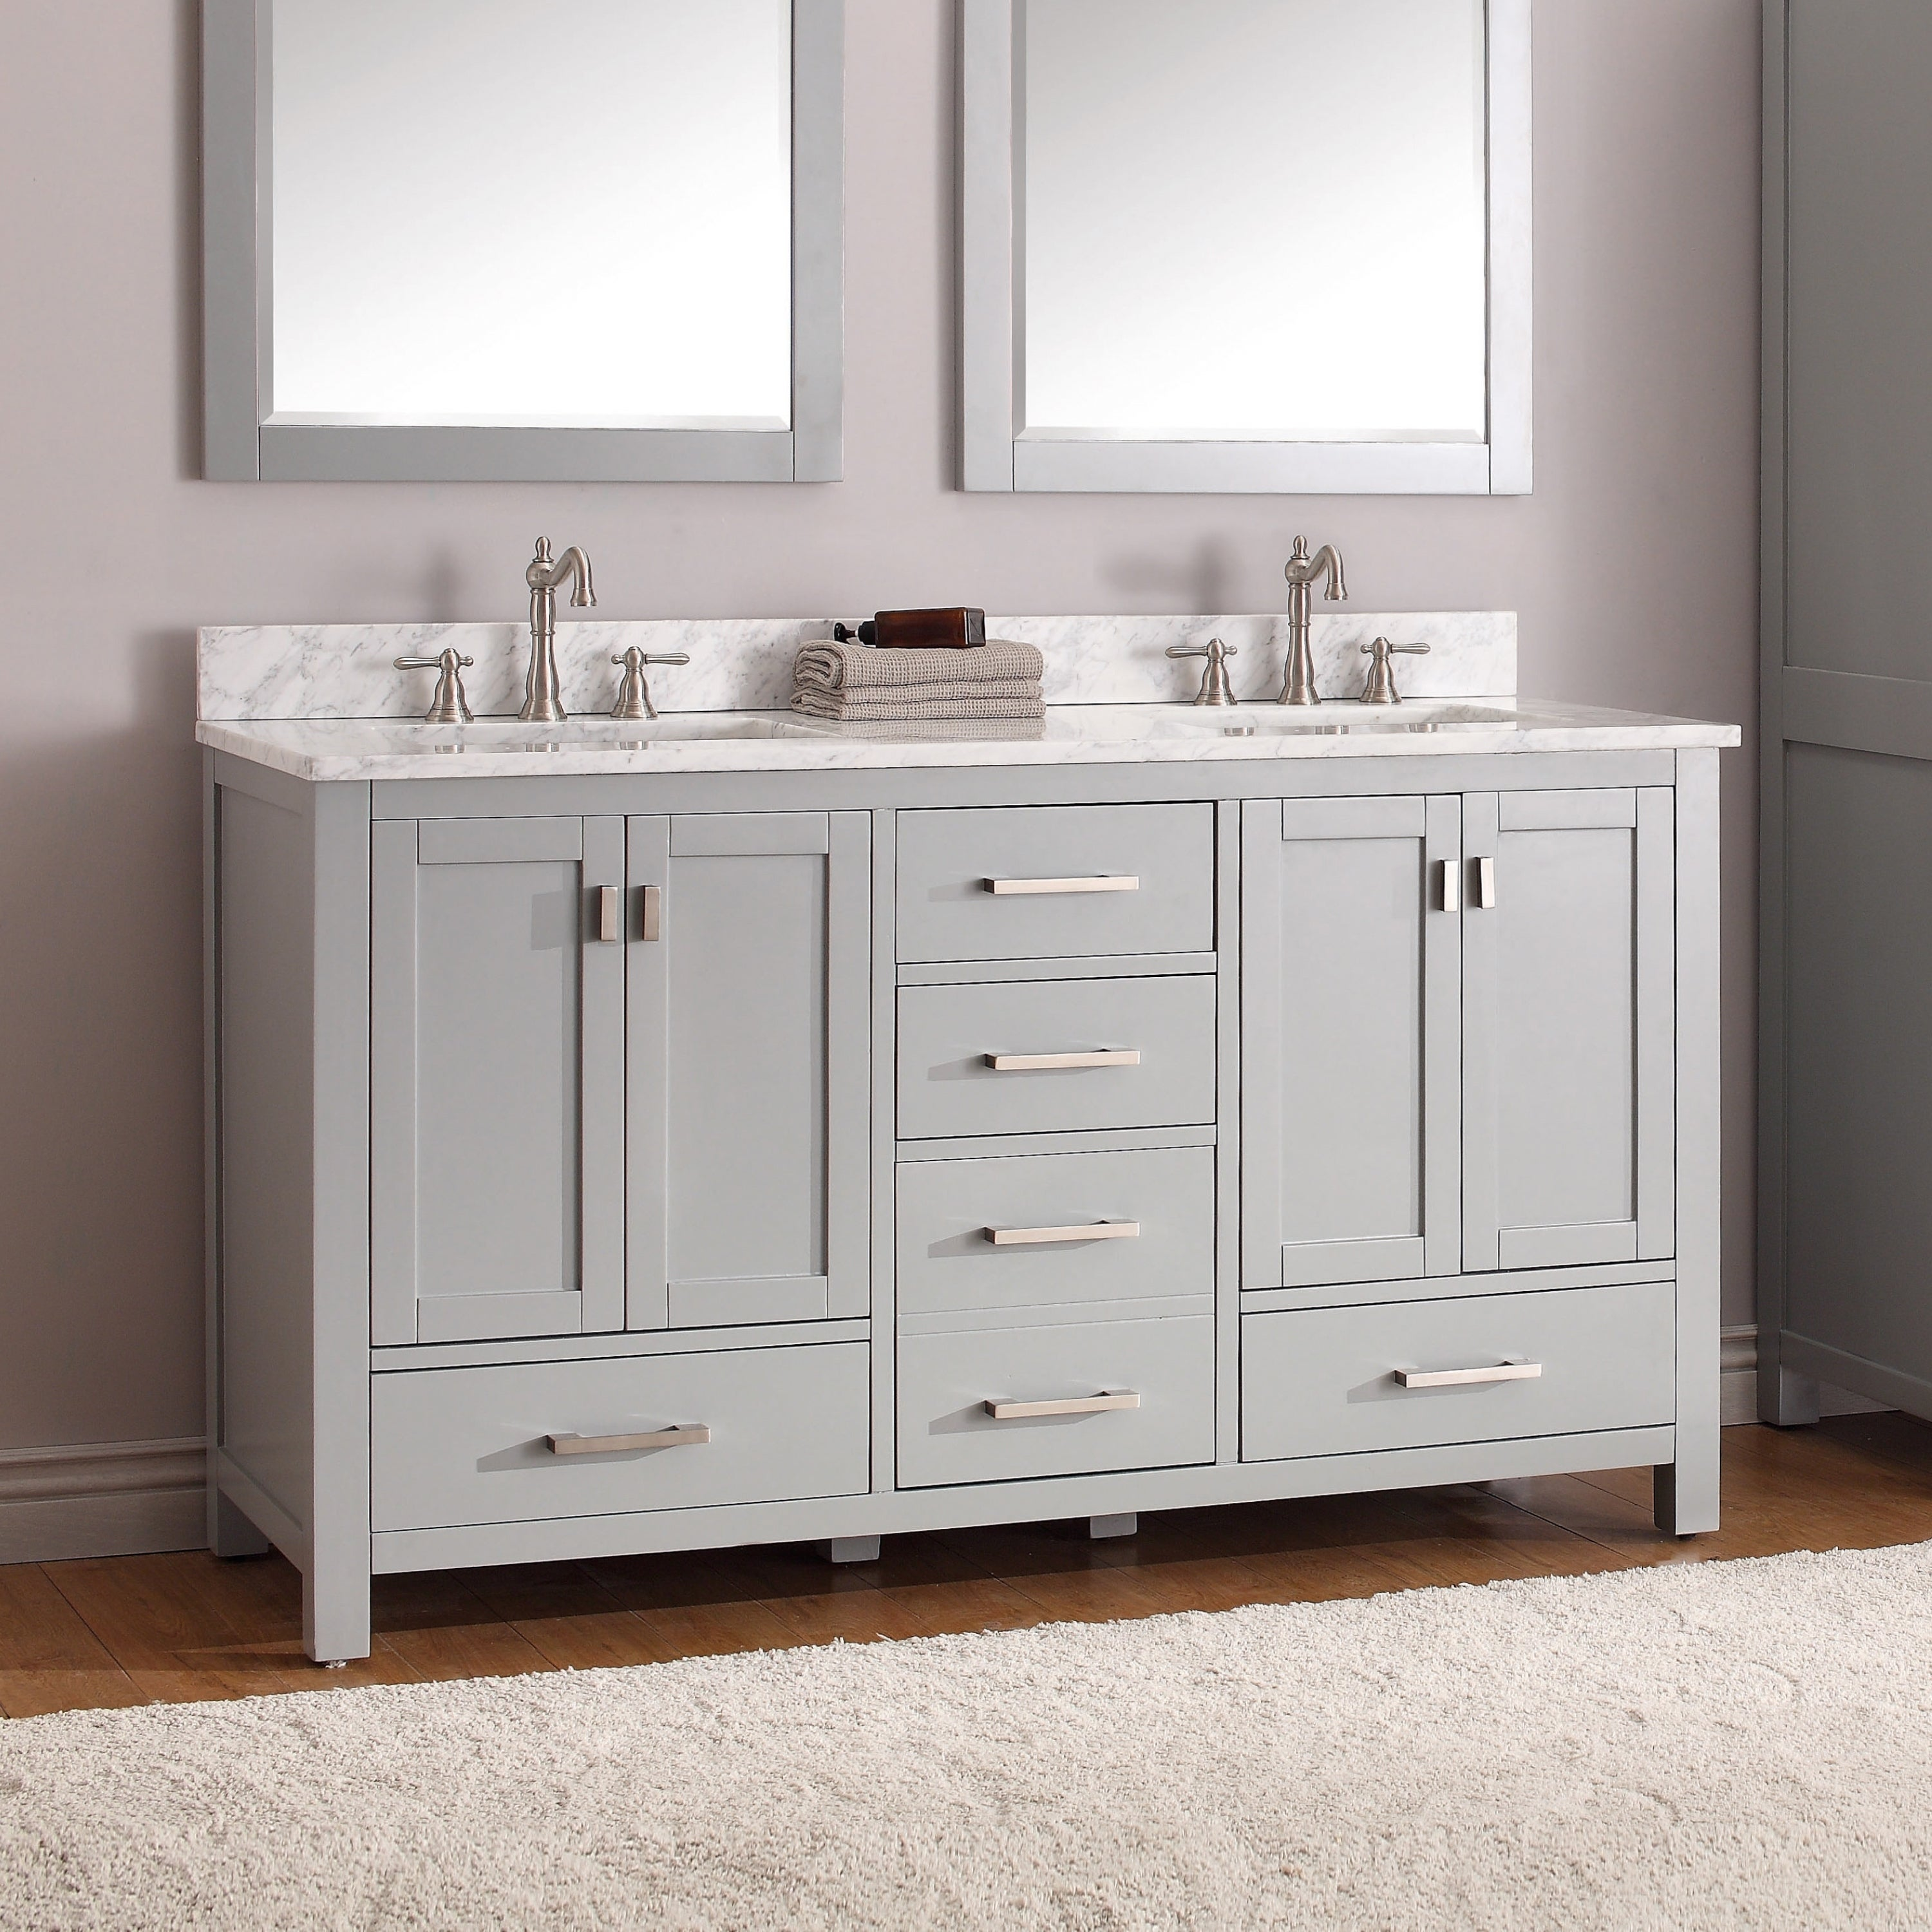 Avanity Modero 60 Inch Double Vanity Only In Chilled Gray Finish Overstock 12531753